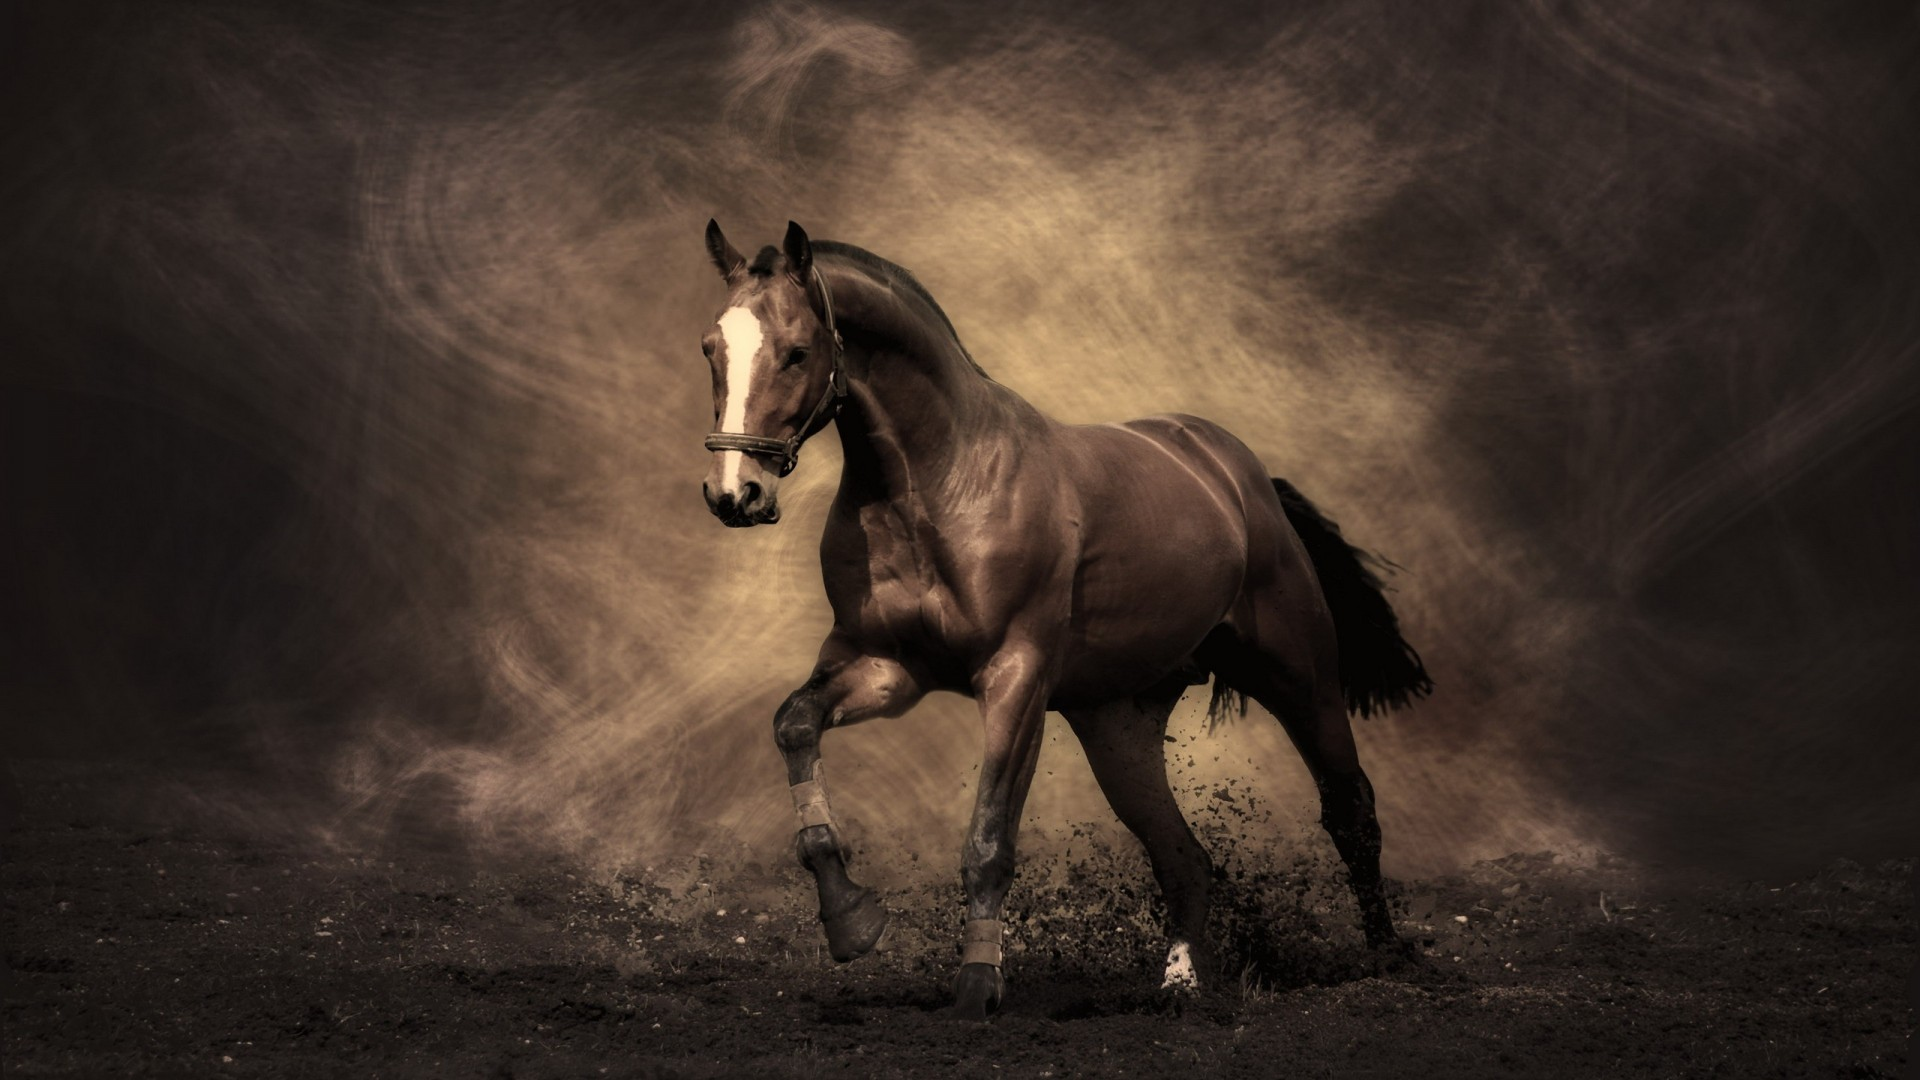 wild horses racing wallpaper - photo #35